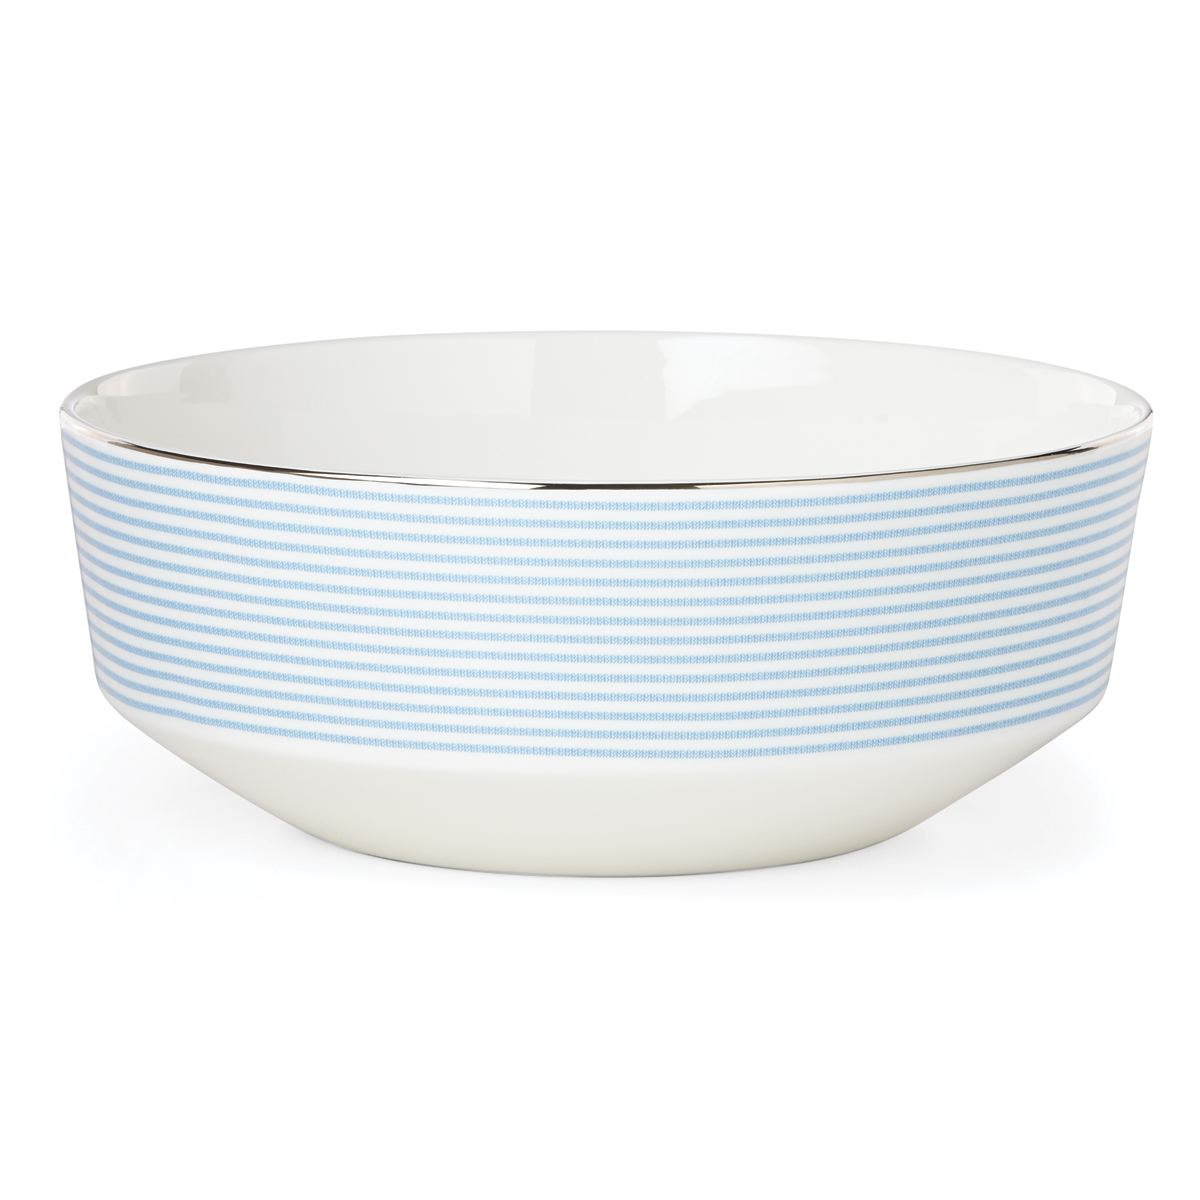 Kate Spade China by Lenox, Laurel St Serving Bowl